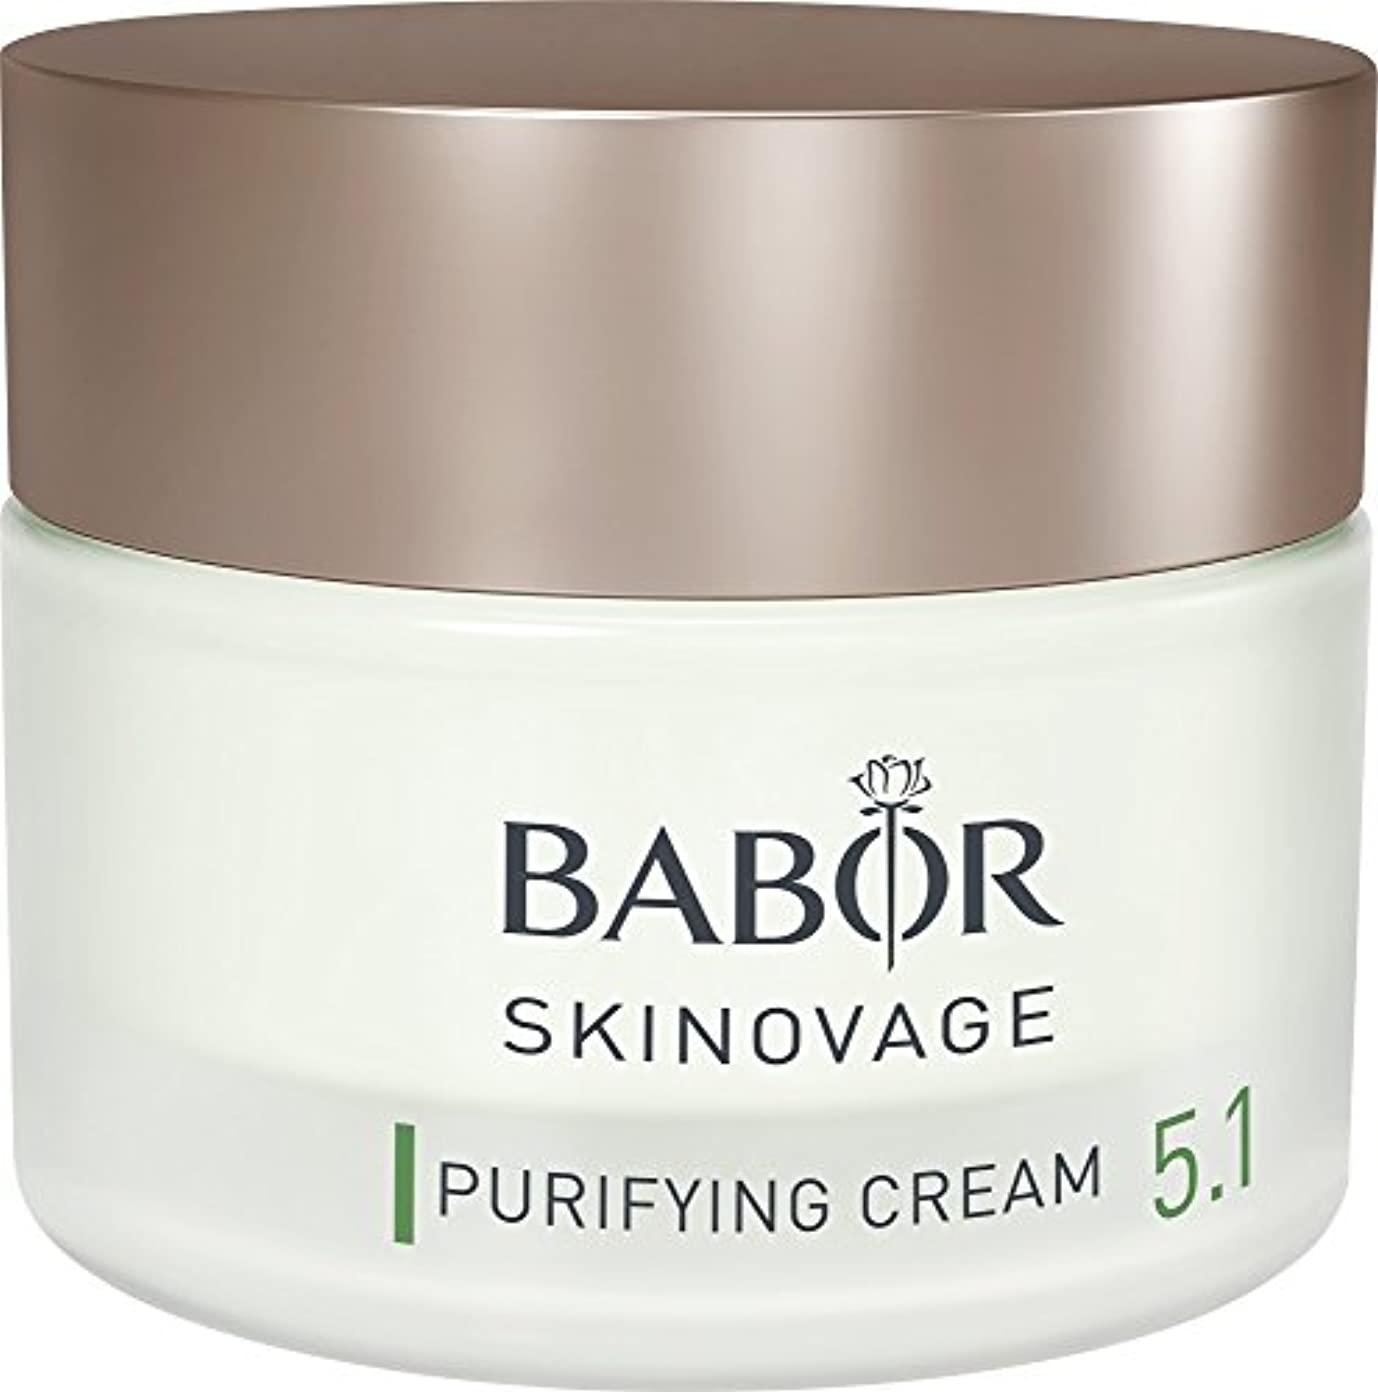 減少アラブトラブルバボール Skinovage [Age Preventing] Purifying Cream 5.1 - For Problem & Oily Skin 50ml/1.7oz並行輸入品